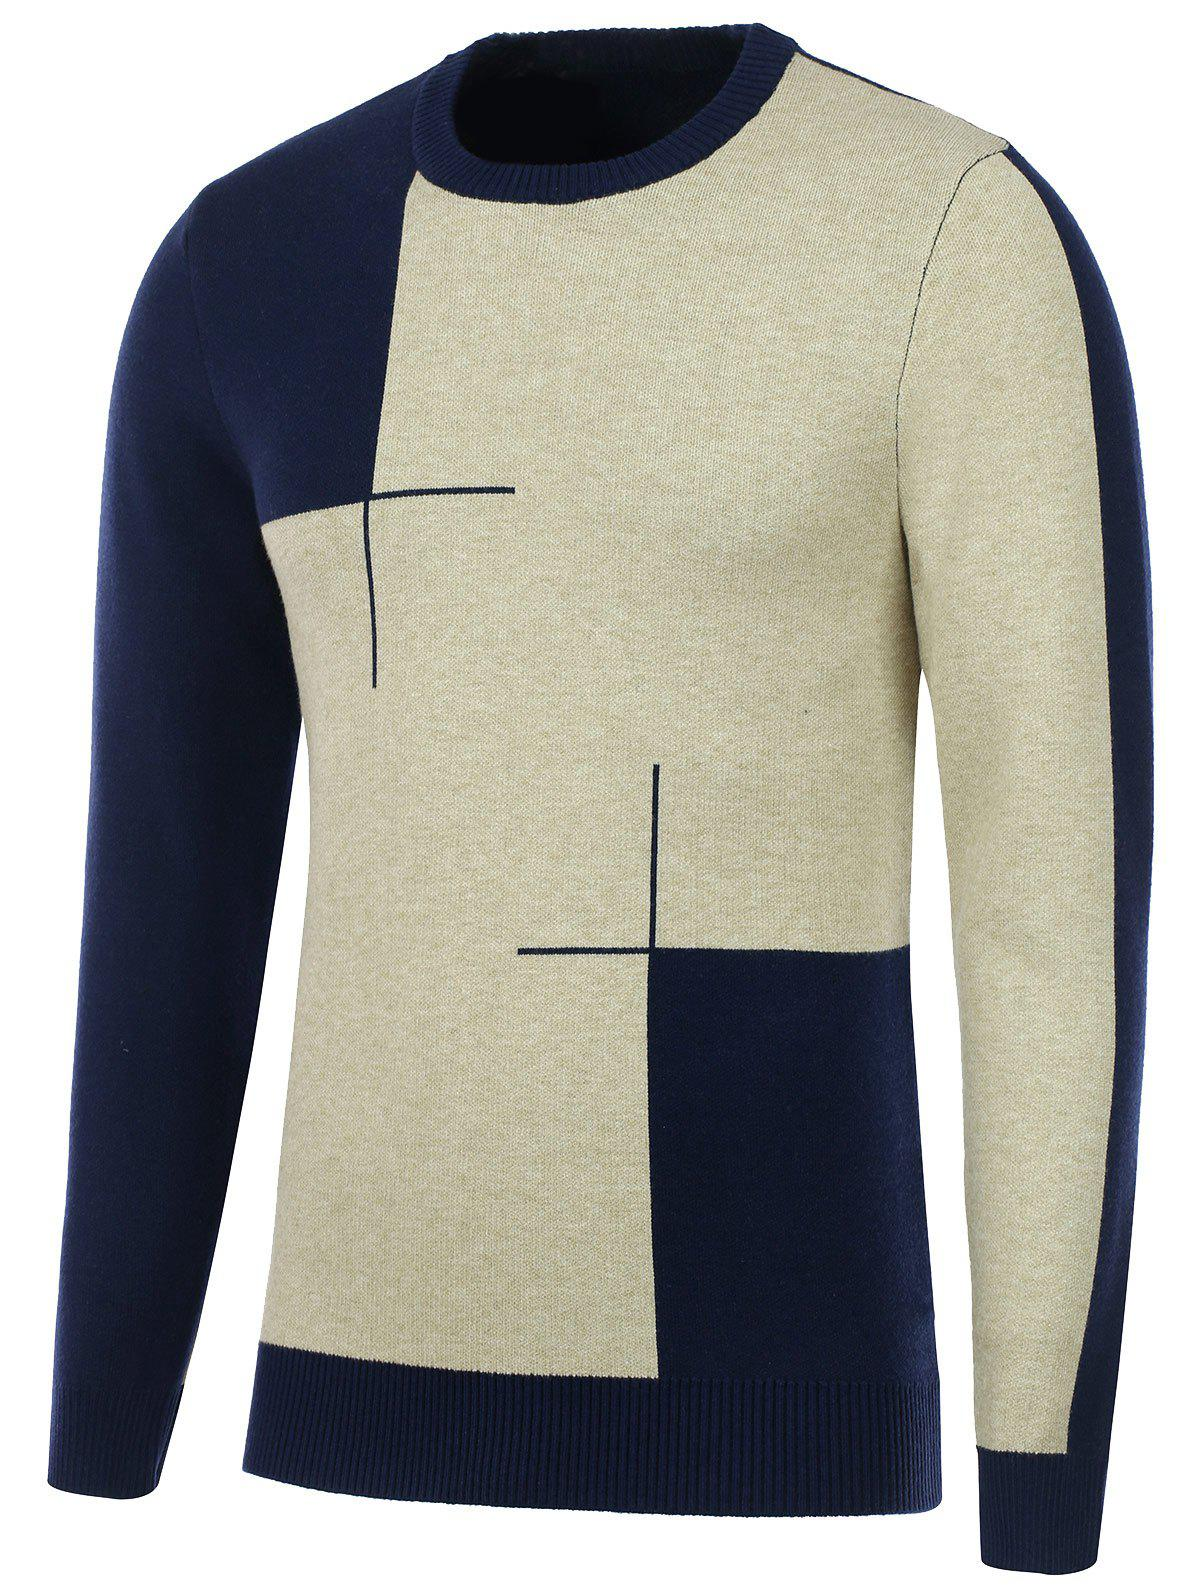 Two Tone Crew Neck Knitted Sweater - CADETBLUE L